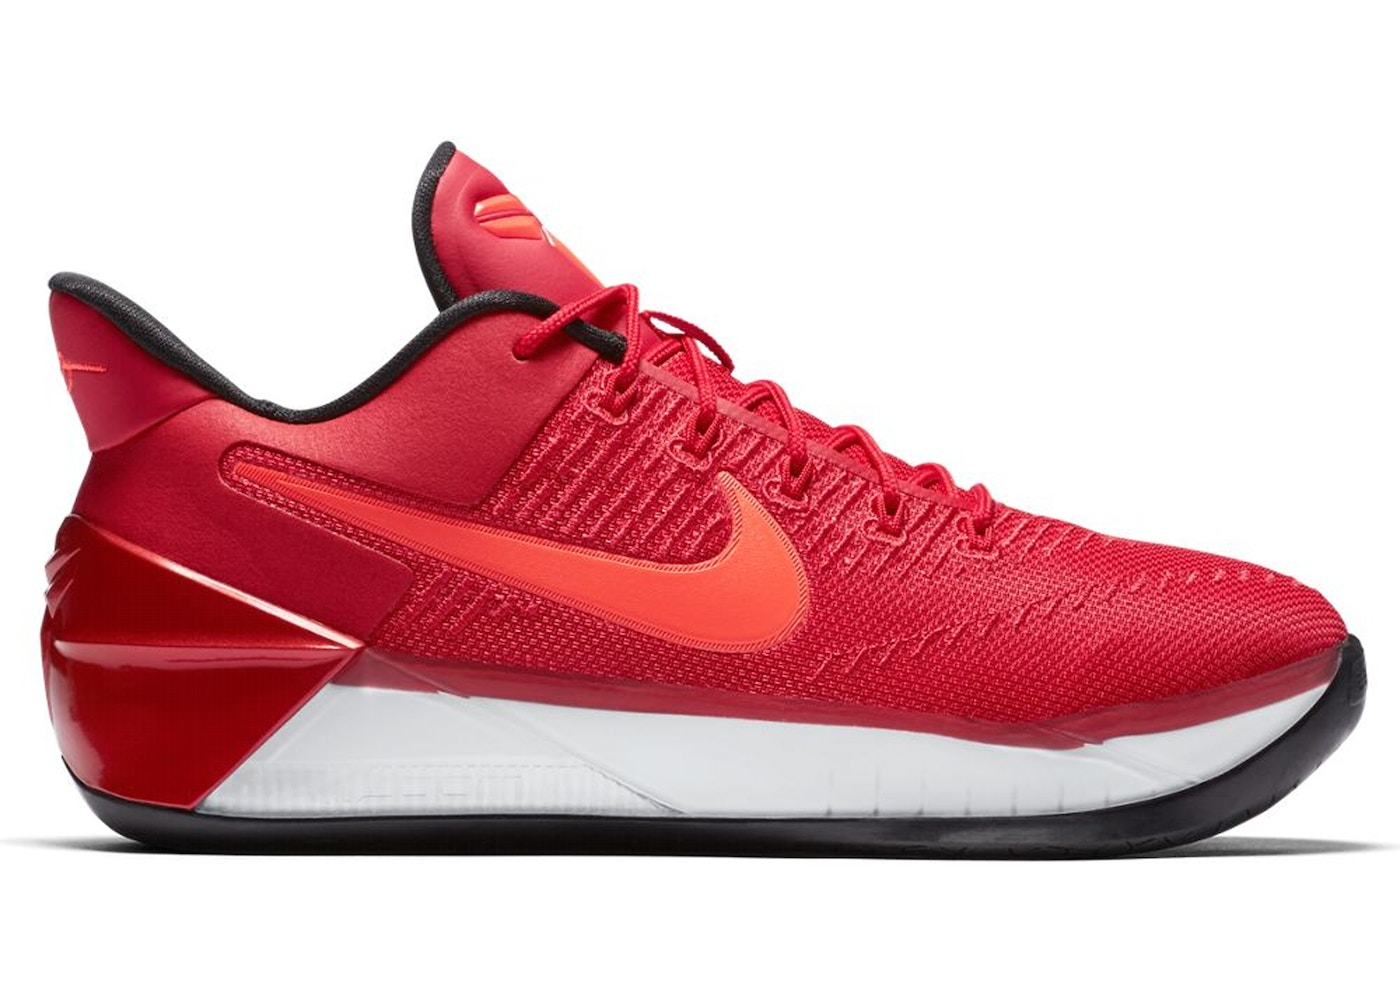 check out 58d7a b8399 Kobe AD University Red (GS) - 869987-608